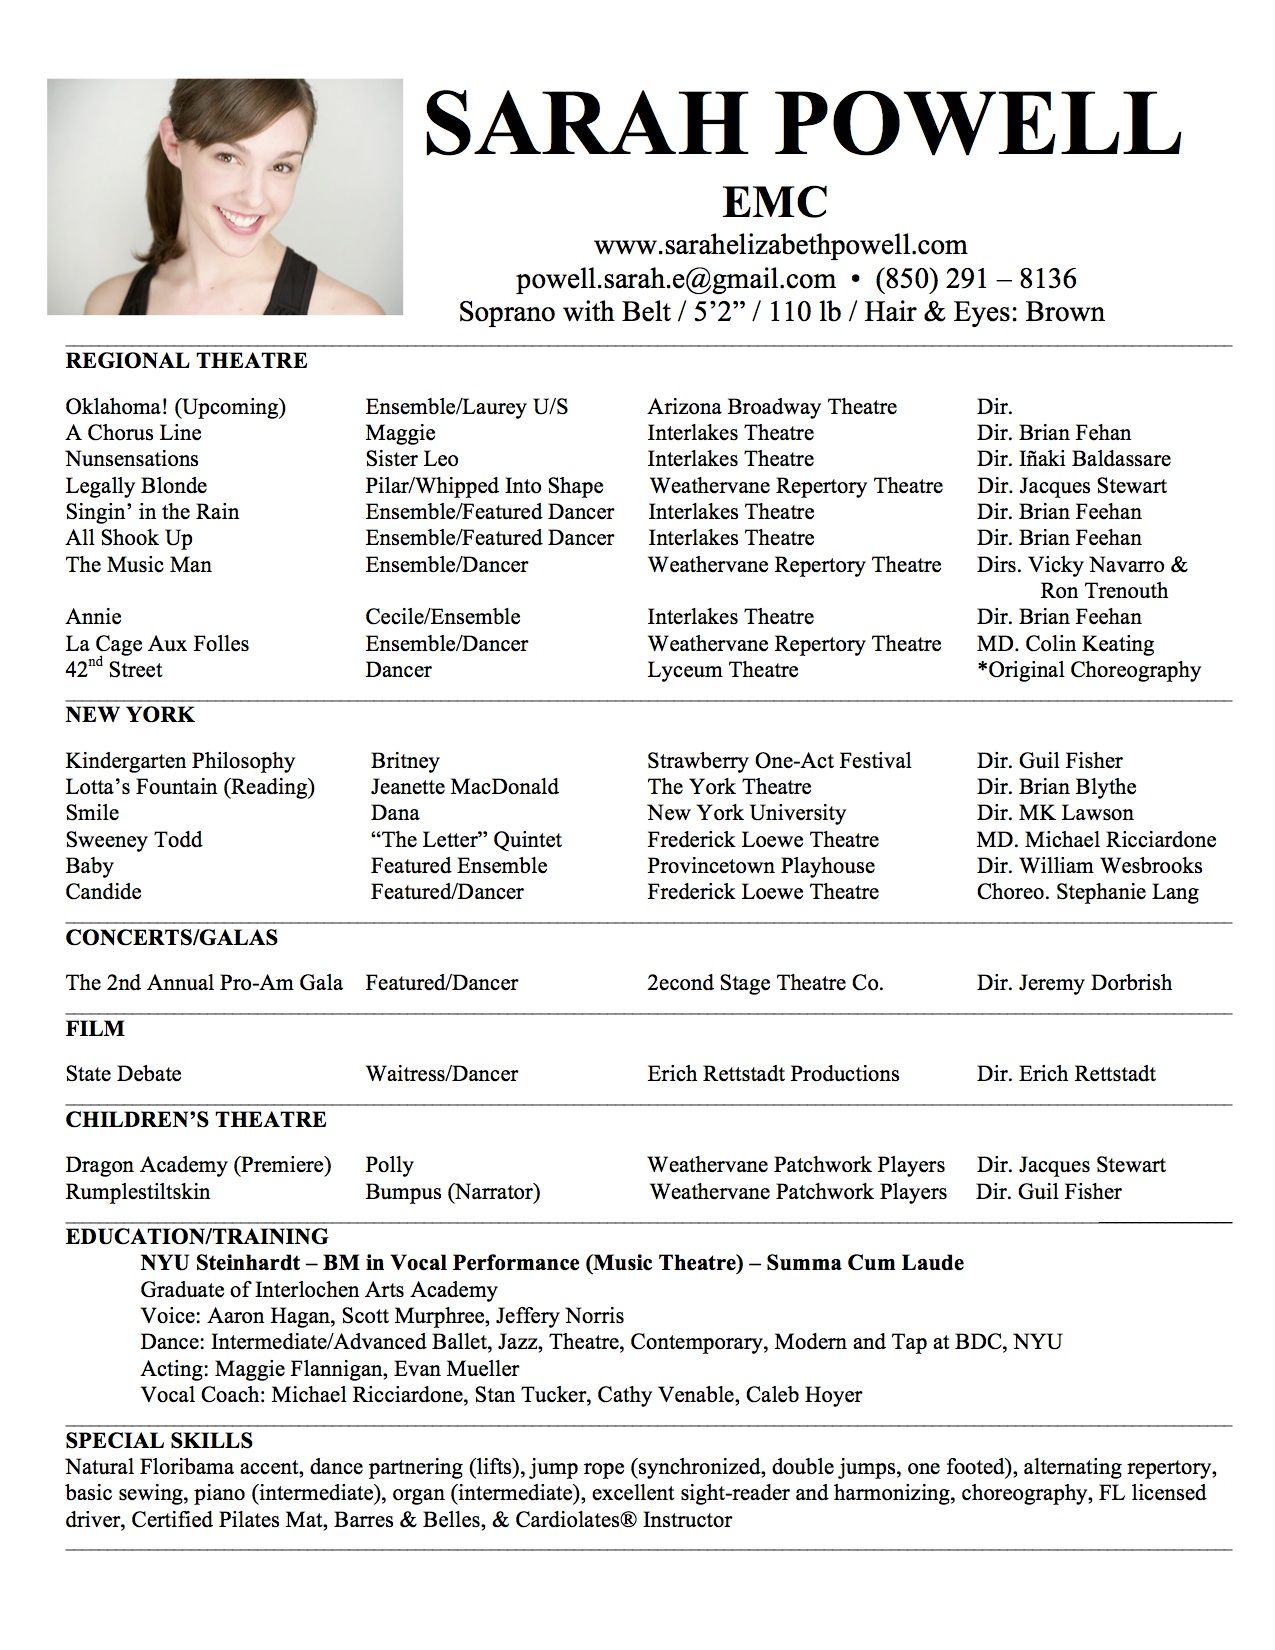 Elegant Headshot Resume Sarah Elizabeth Powell Sample Theater Musical Technical  Theatre Template Intended Musical Theatre Resume Examples